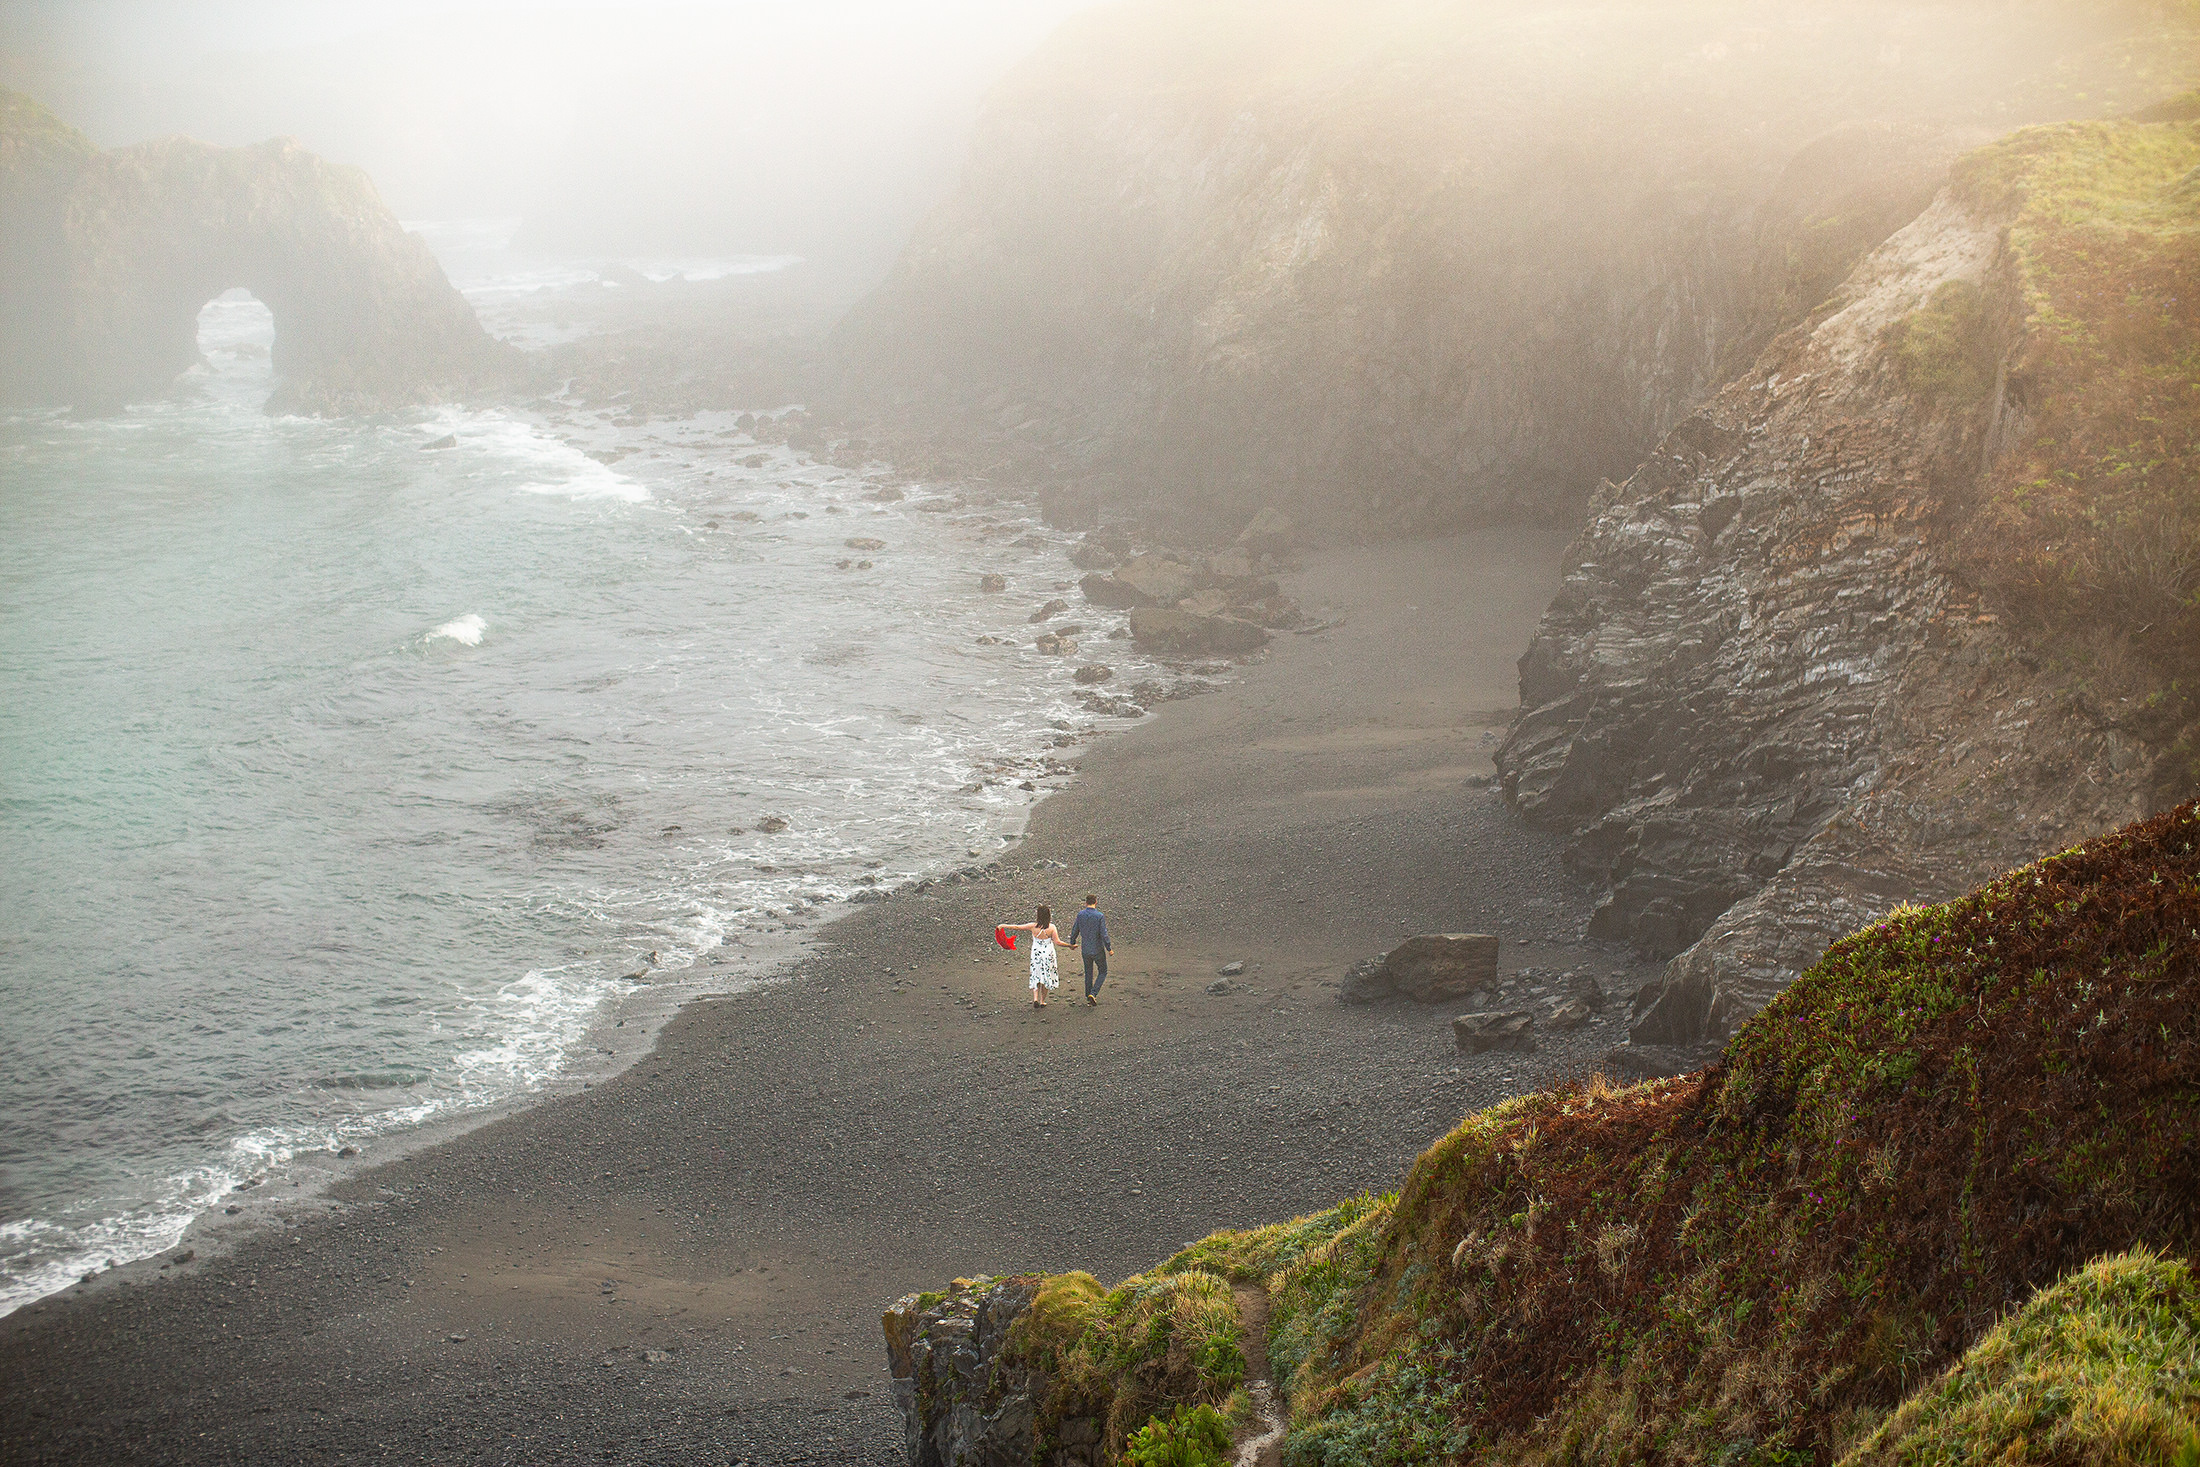 09-fog-beach-pacific-ocean-bride-groom-mendocino-headlands-california-wedding.jpg